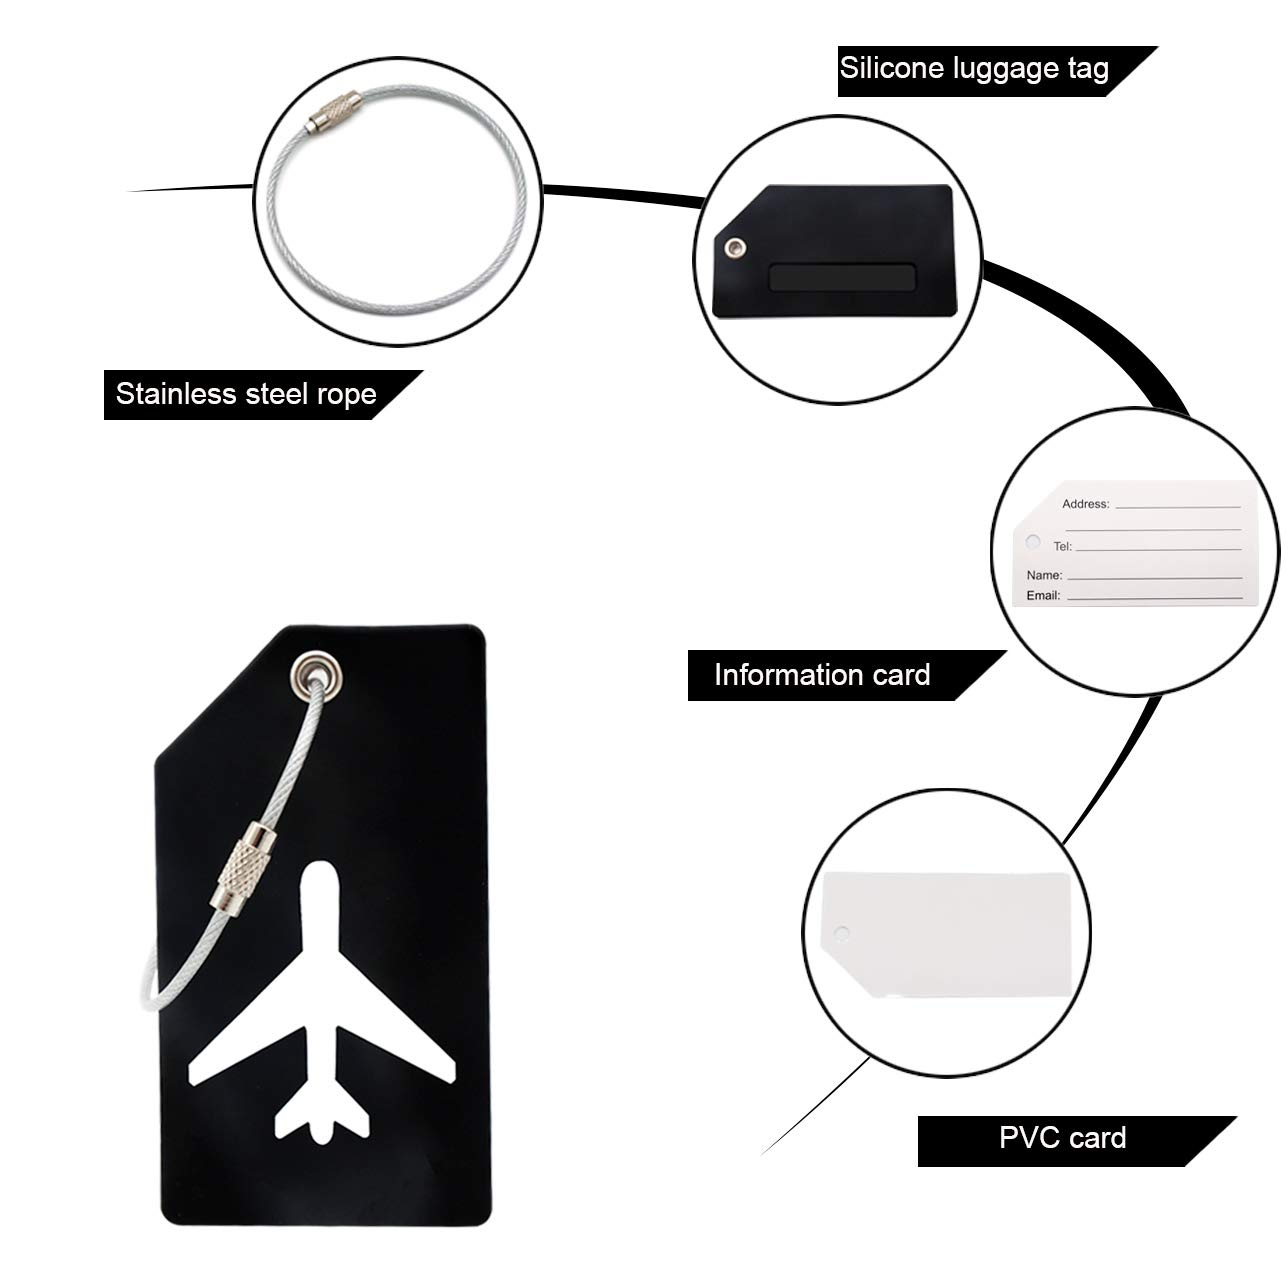 kids and cruise ship Green Premium flexible Travel ID Bag Tag helps Quickly Spot Luggage 2PCS Y.A for women men LOTUS Silicone Luggage Tag with Name ID Card and Stainless Steel Loop